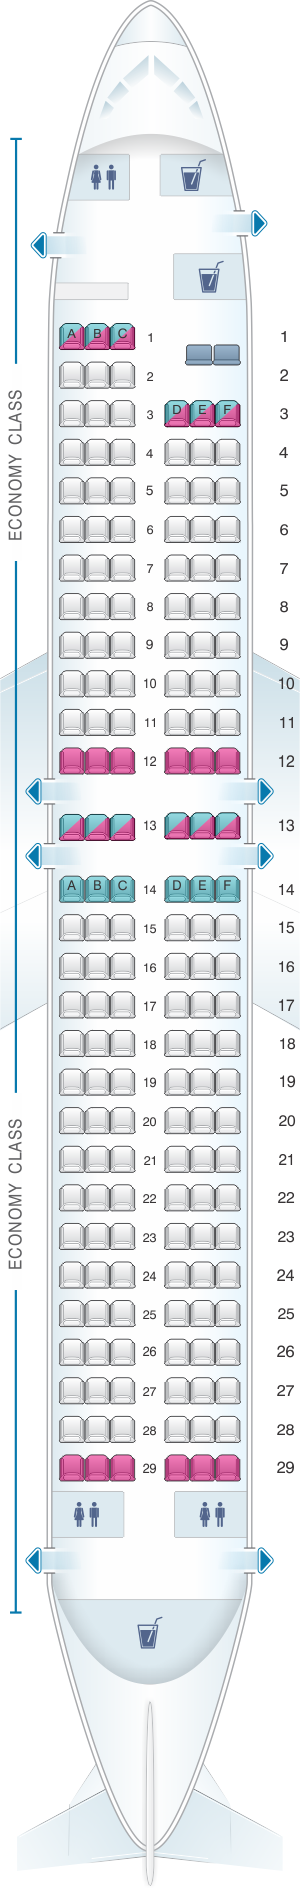 Seat map for Xtra Airways Boeing B737 800